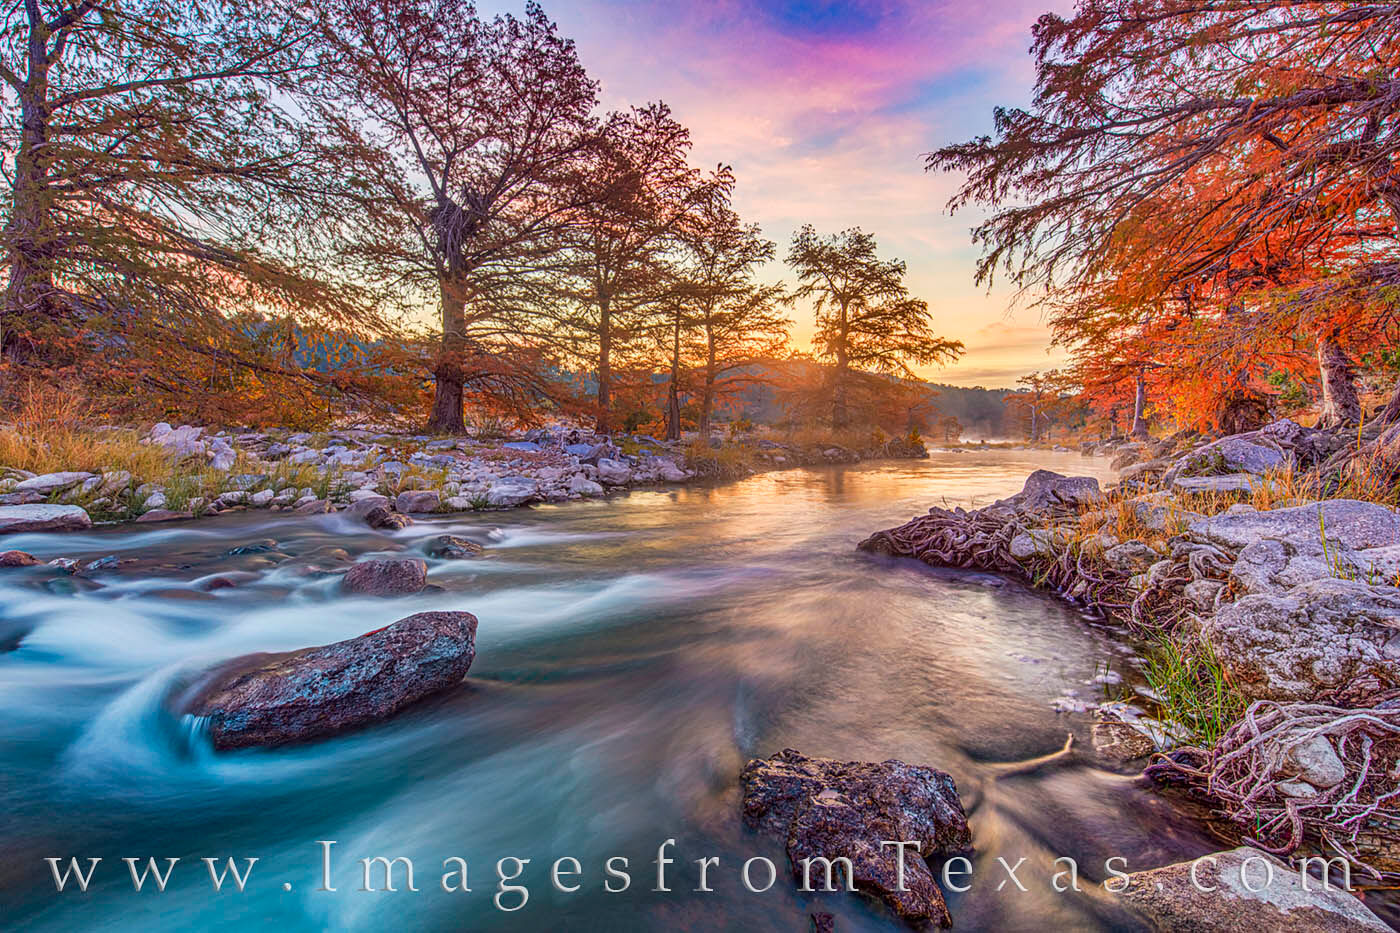 pedernales river, fall, autumn, sunrise, water, november, cold, orange, state park, photo